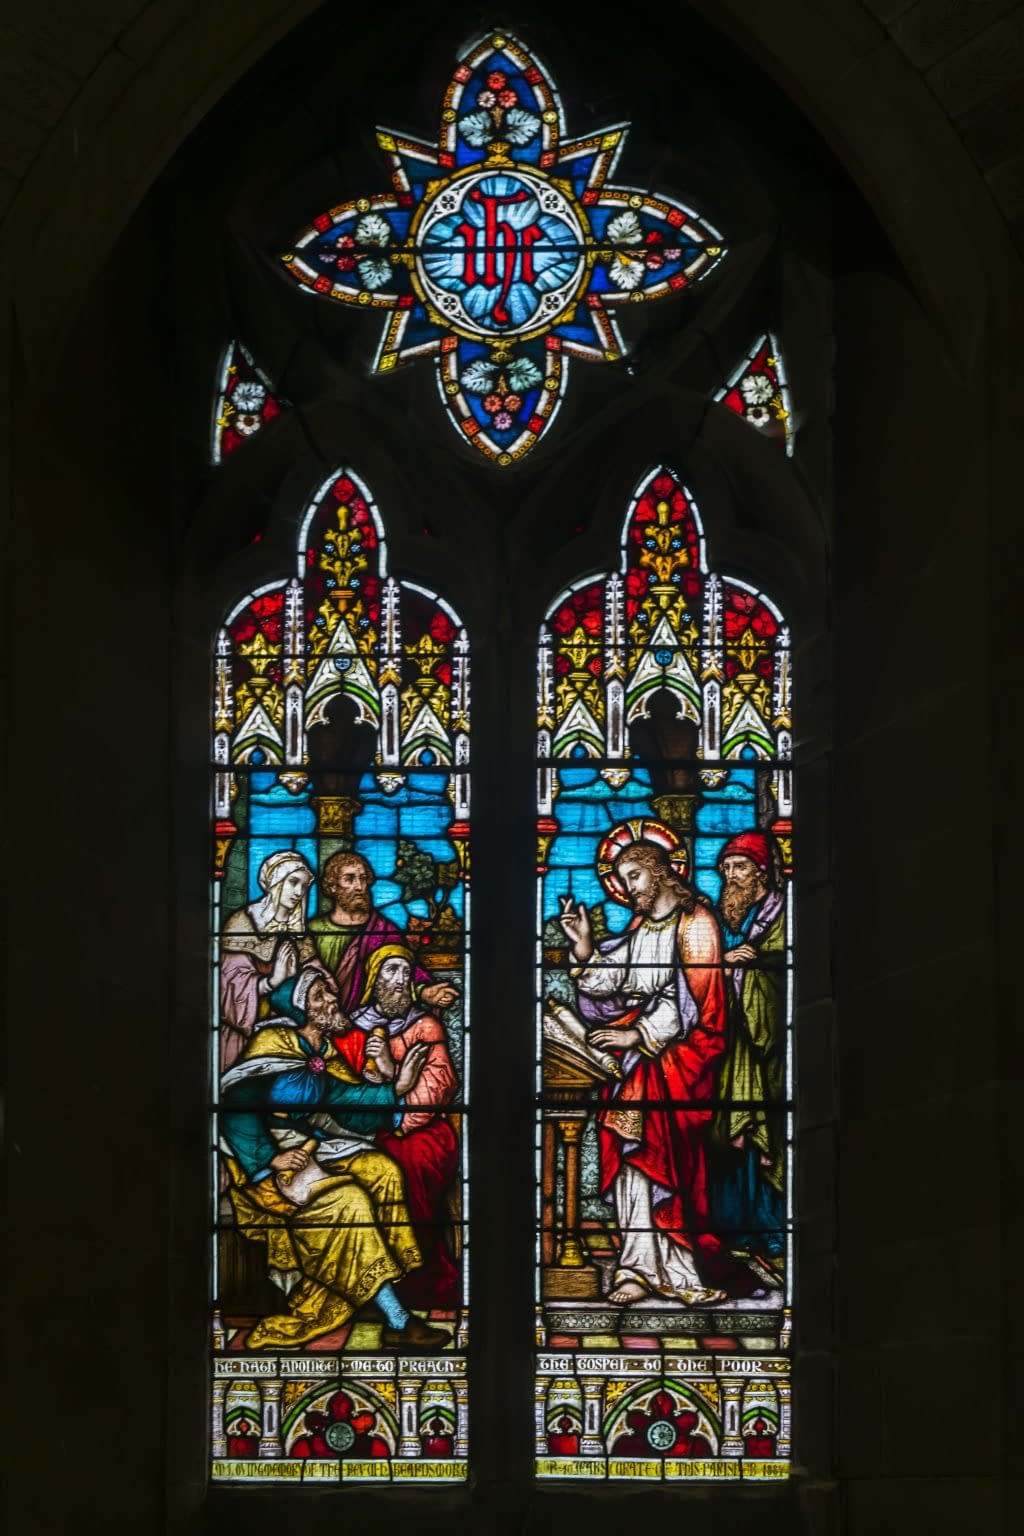 Behind the Lady Chapel altar - Stained glass window at St Mark's Church